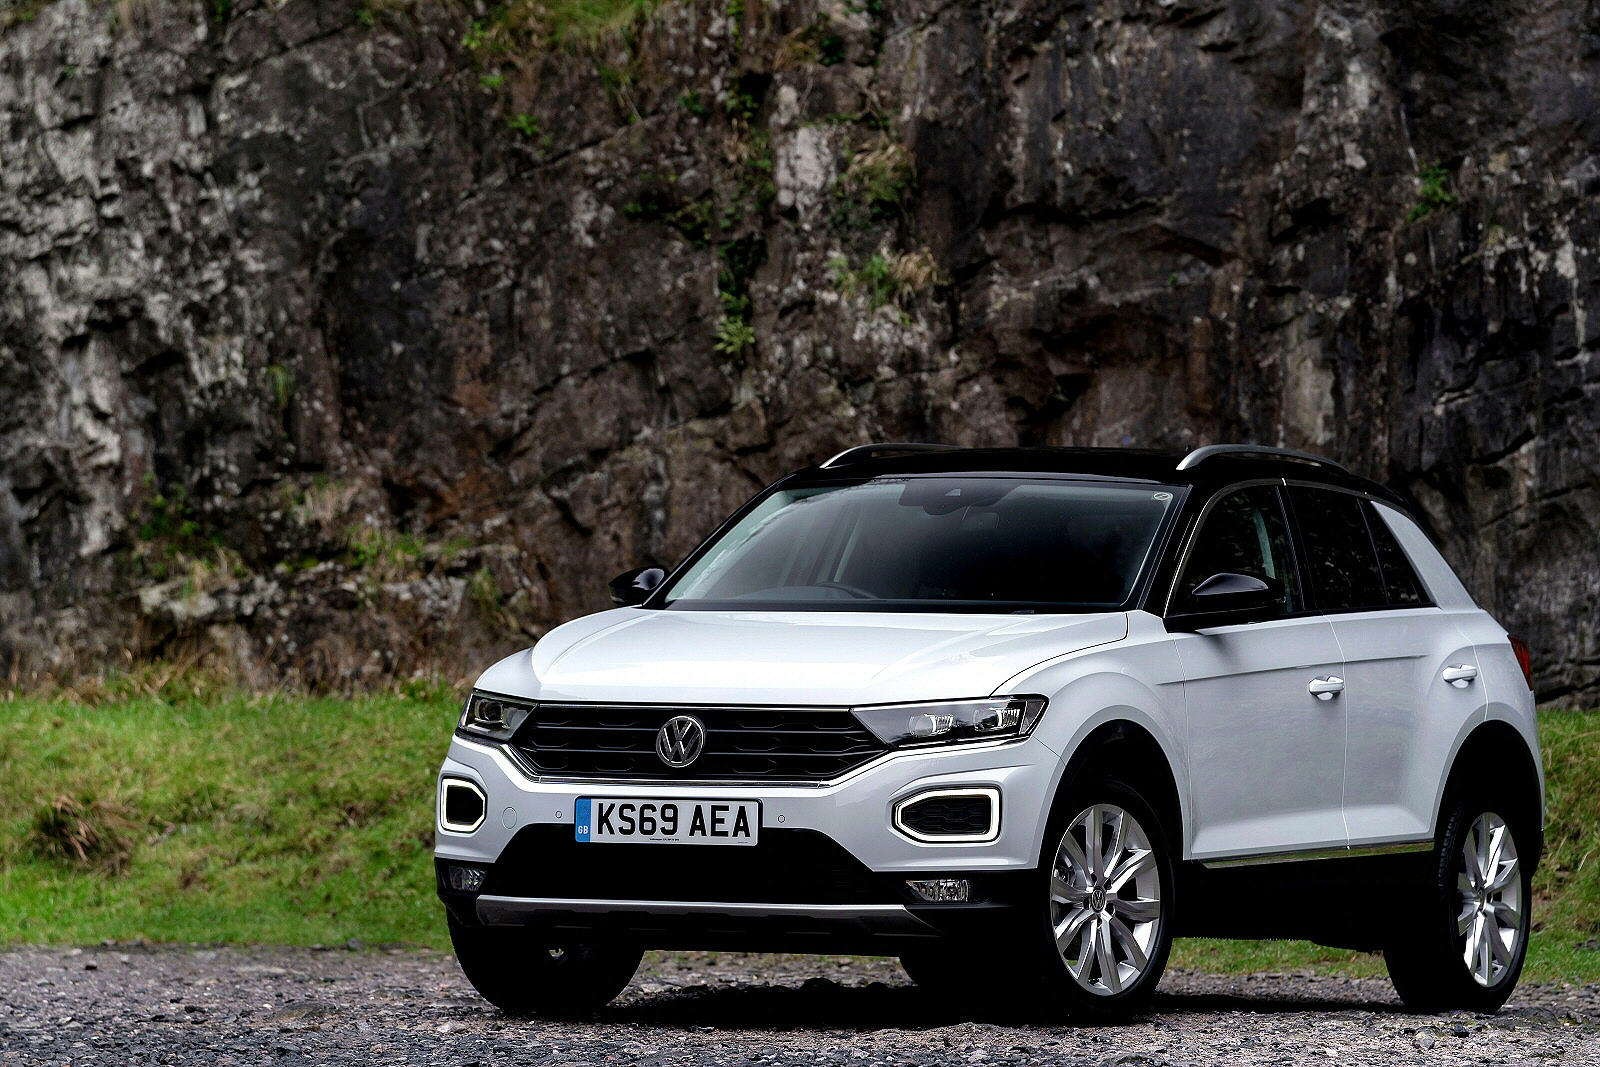 Volkswagen T-ROC Design 1.6 TDI 115PS 5Dr Manual + ELECTRIC TAILGATE